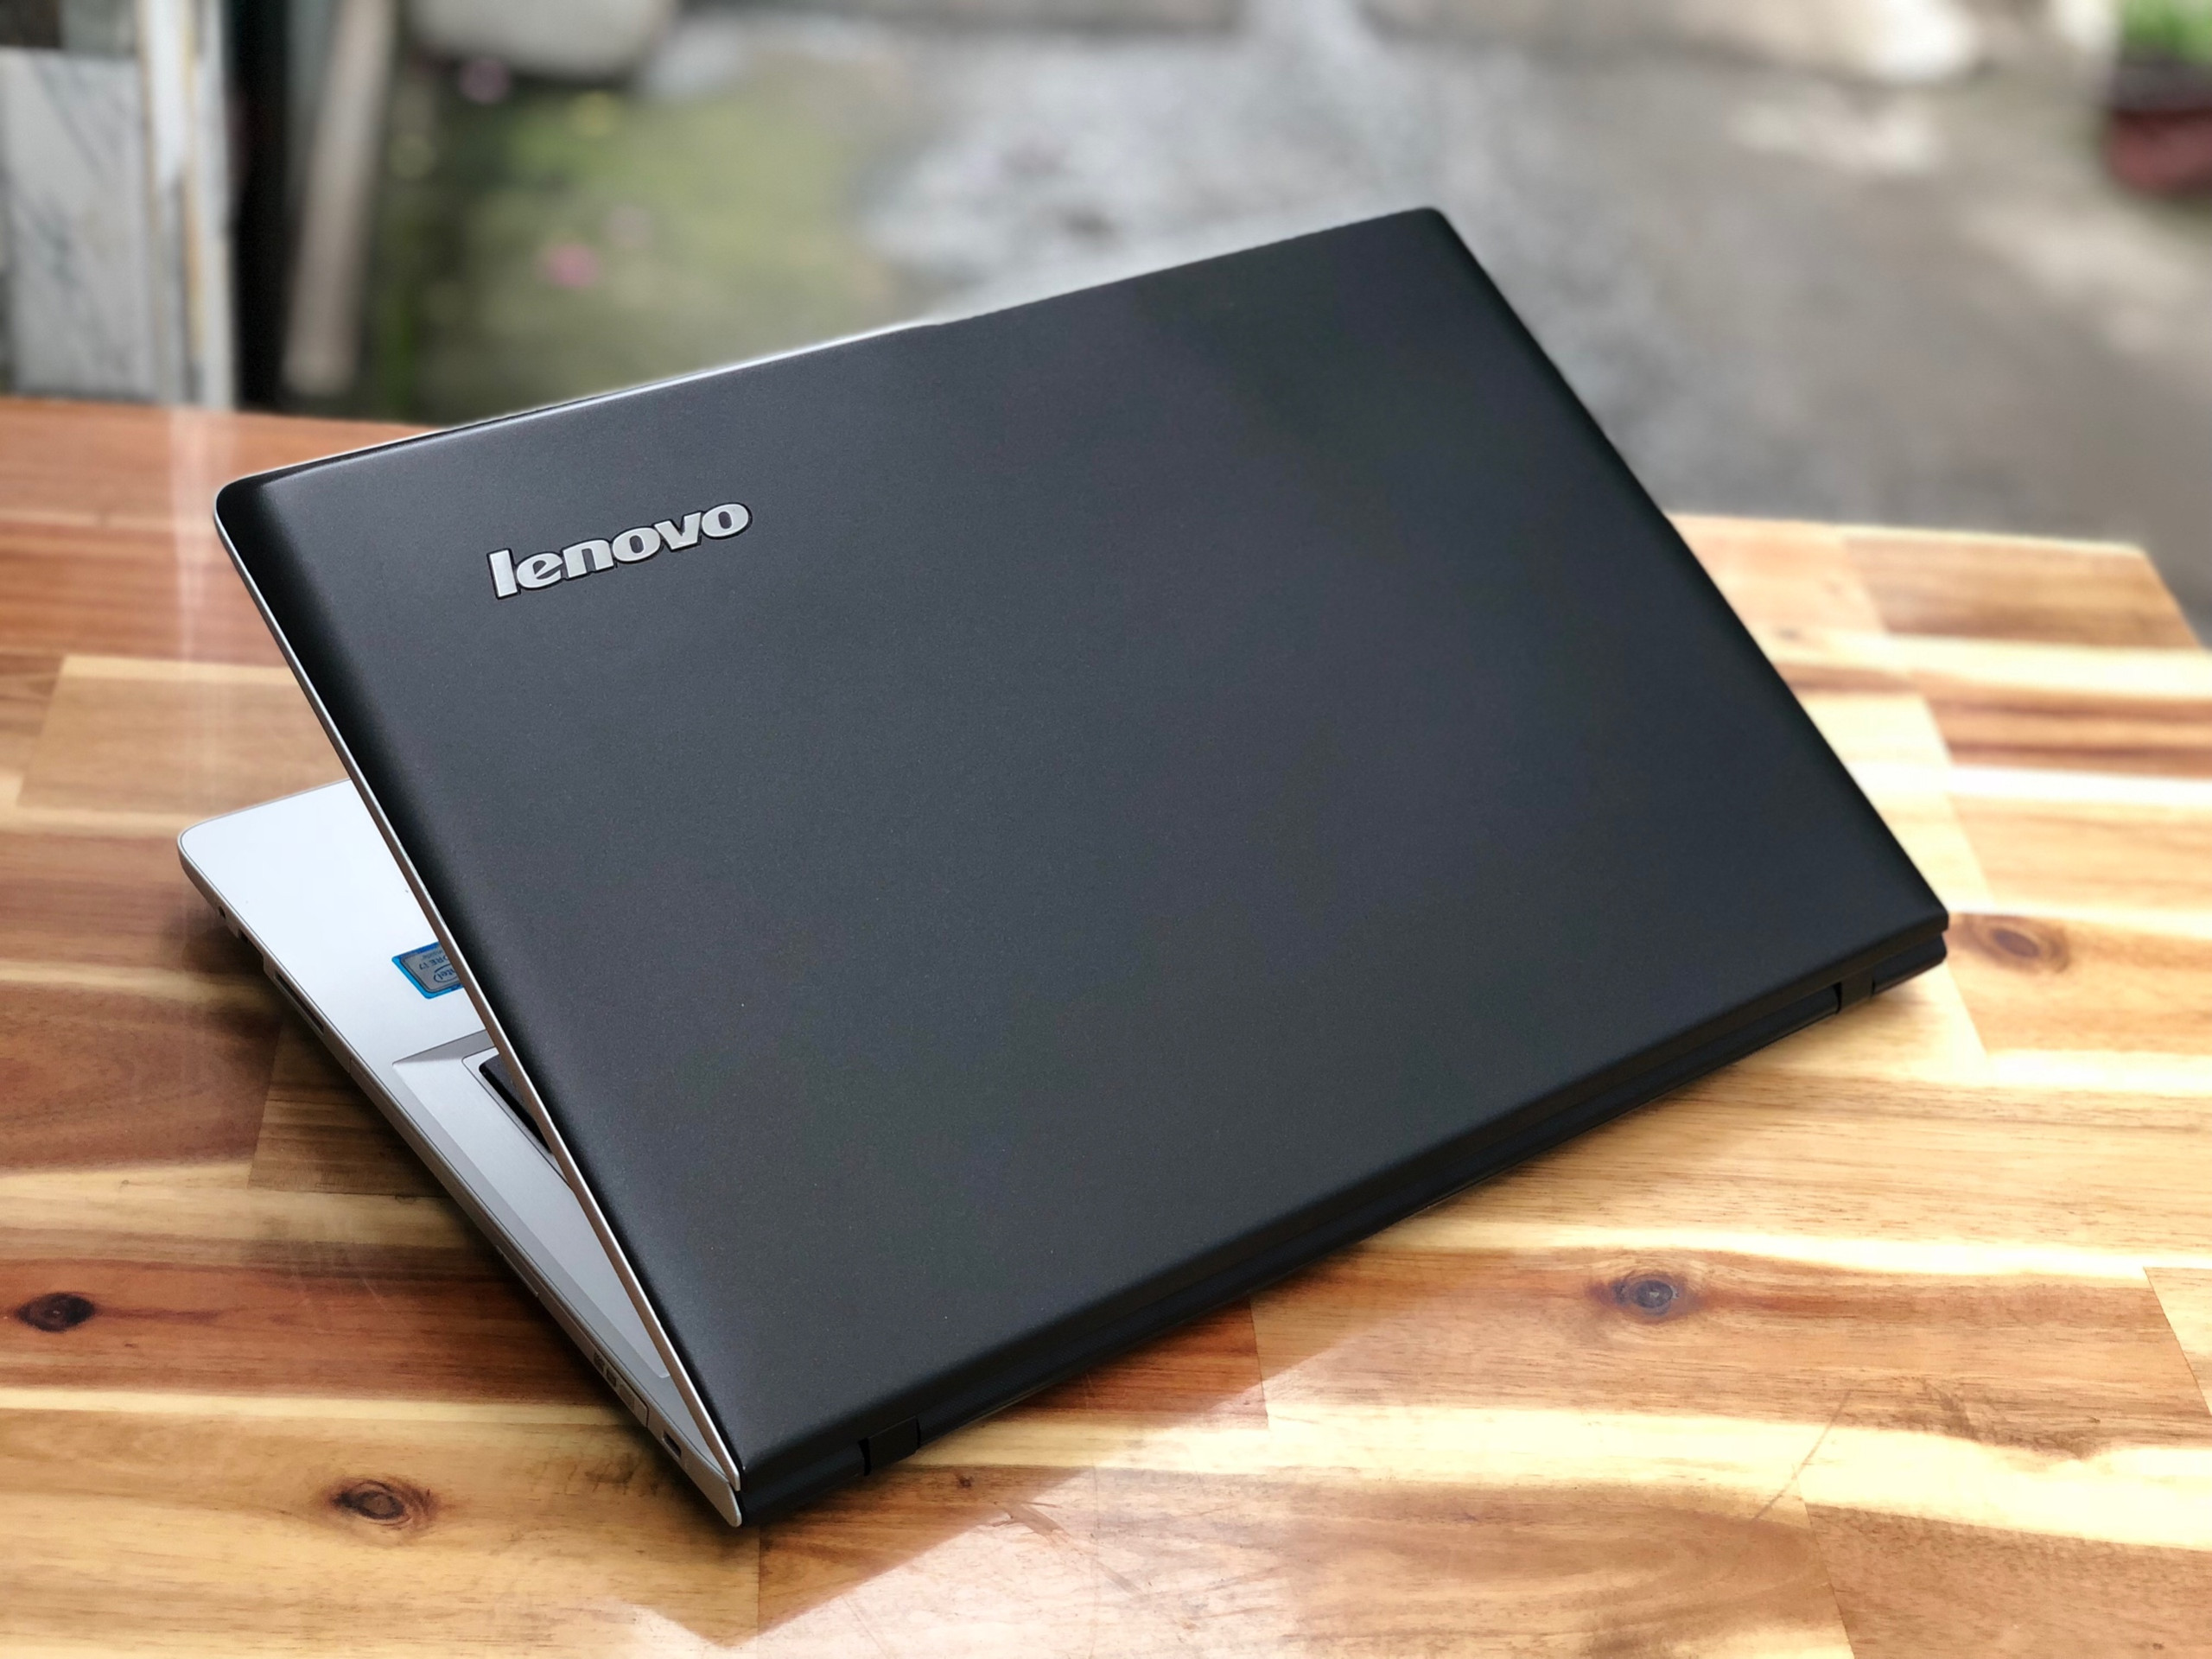 Laptop Lenovo ideapad 500-15ISK, I7 6500U 8G 1T Vga 4G Full HD Like new zin 100% Giá rẻ3